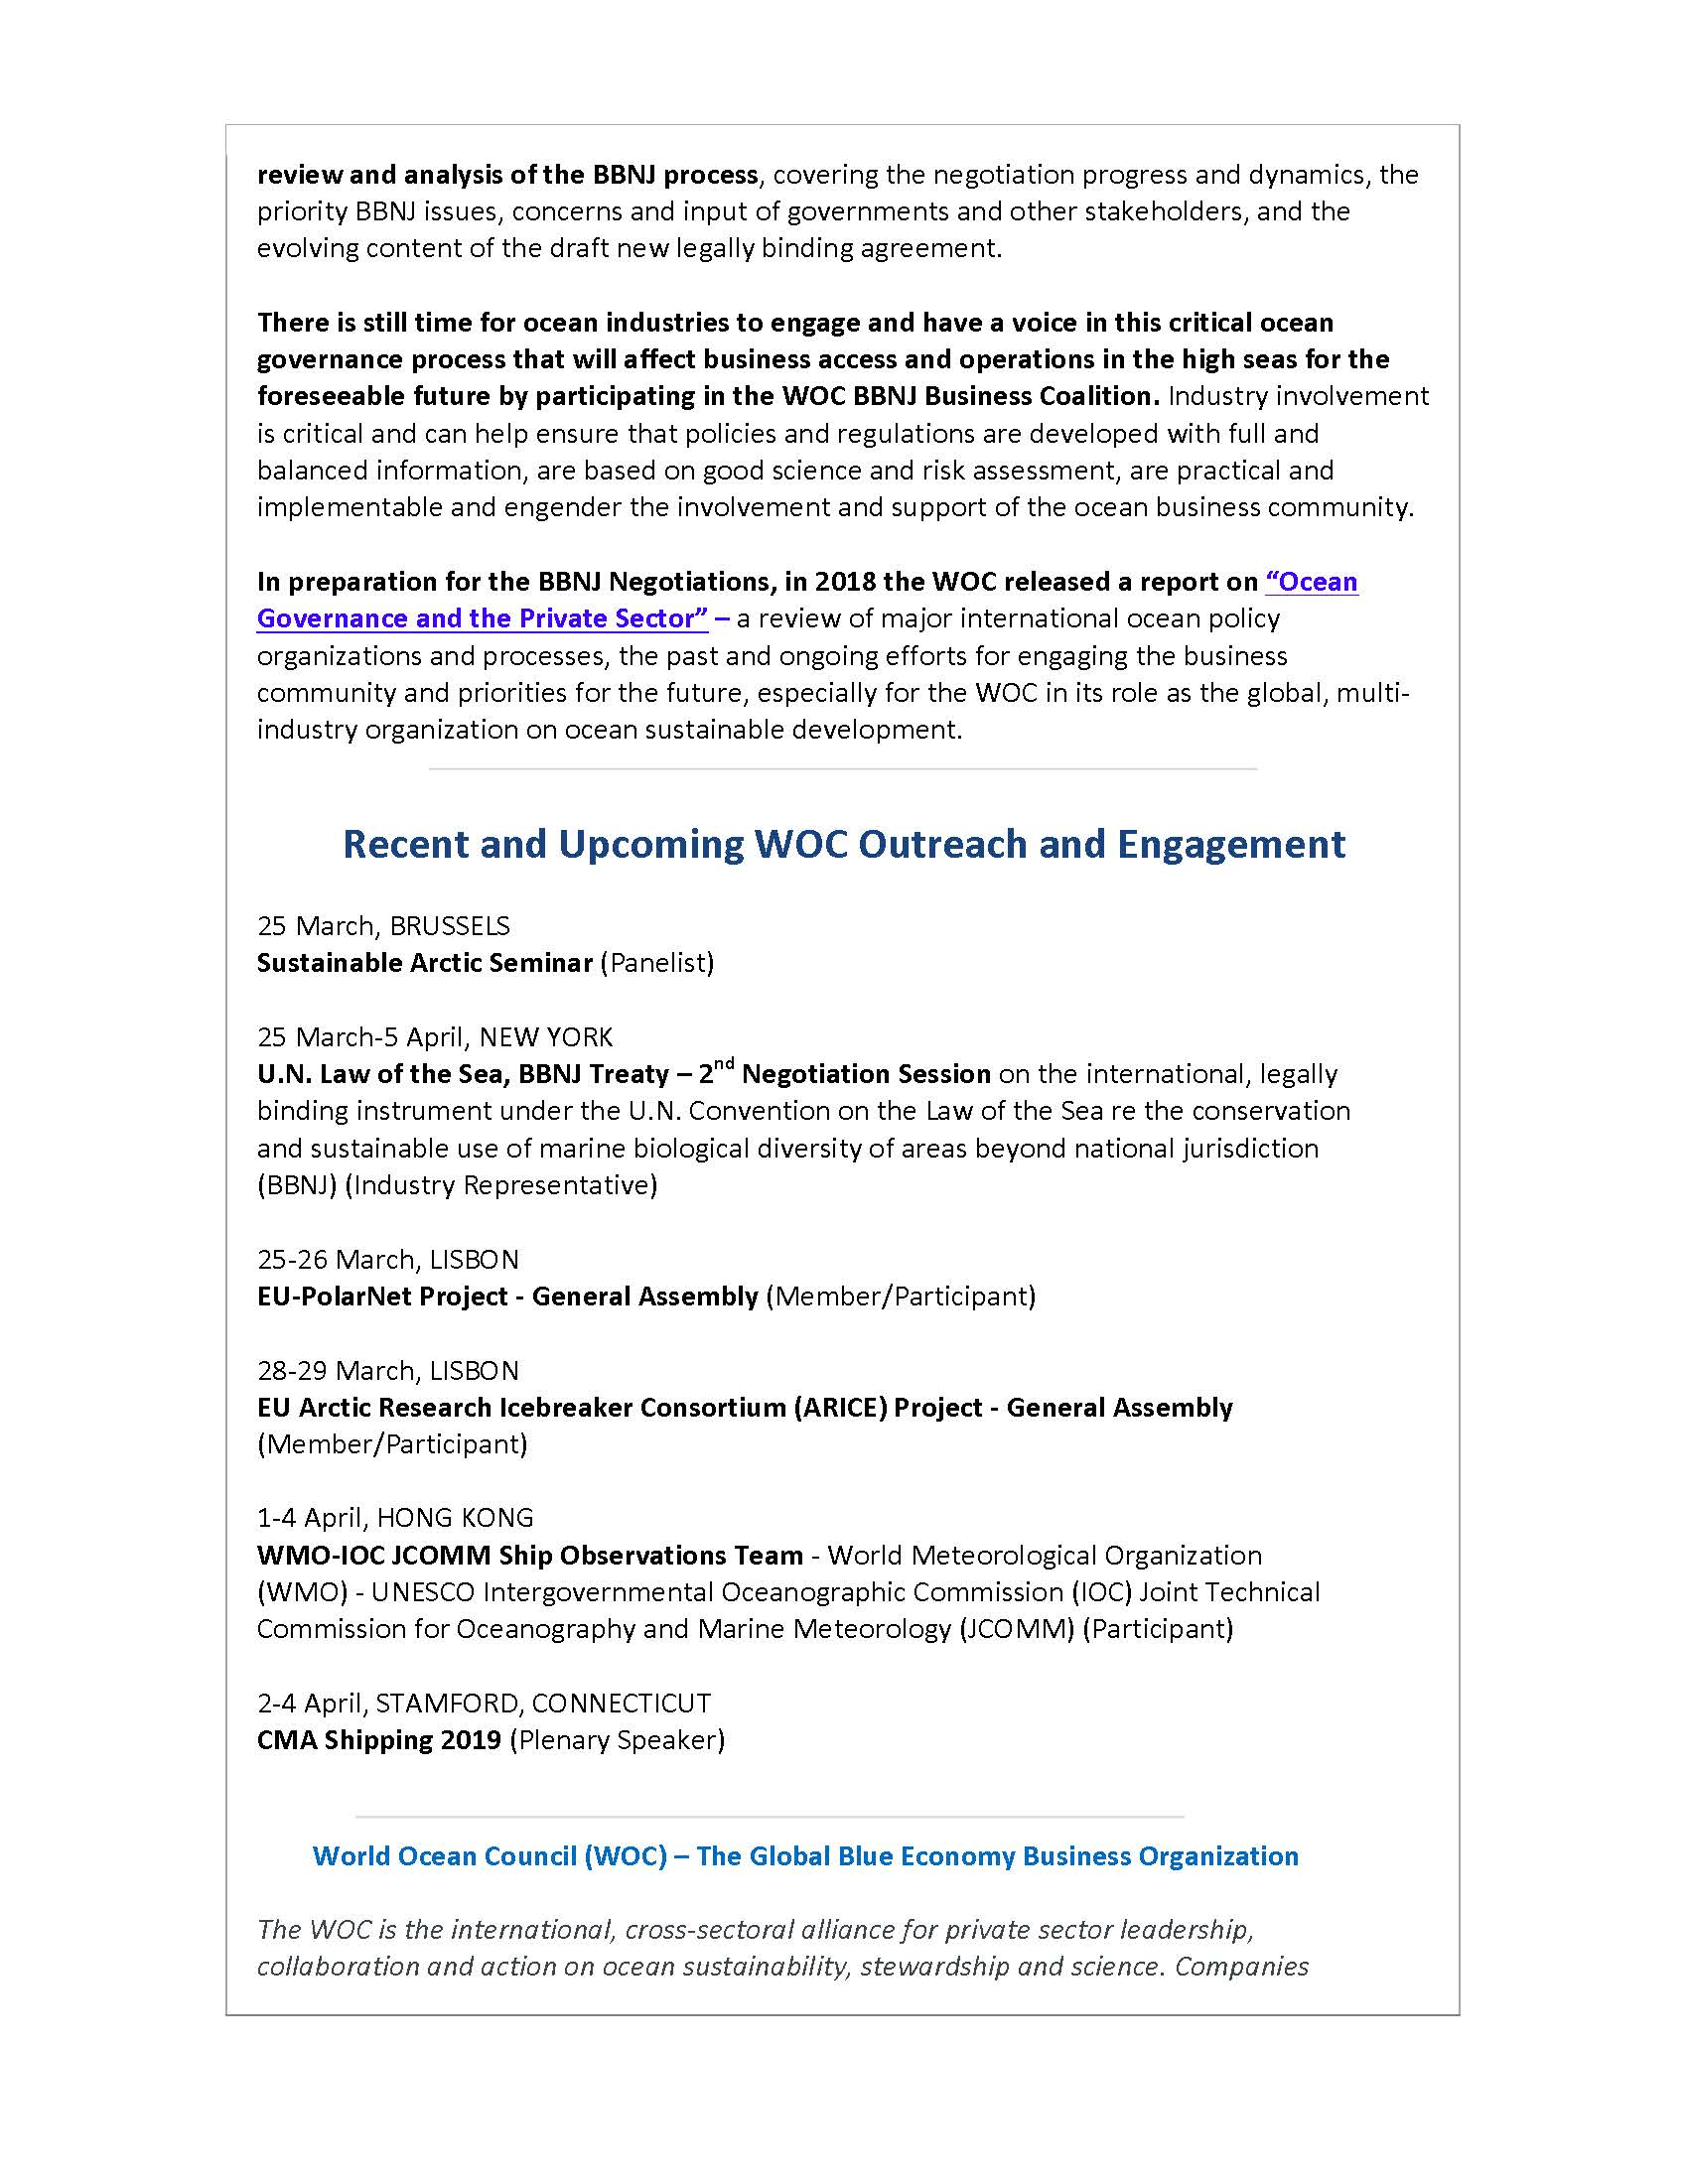 WOC Works to Ensure Business Input to Negotiations for New, Legally Binding Law of the Sea Regulations - 25 March 2019